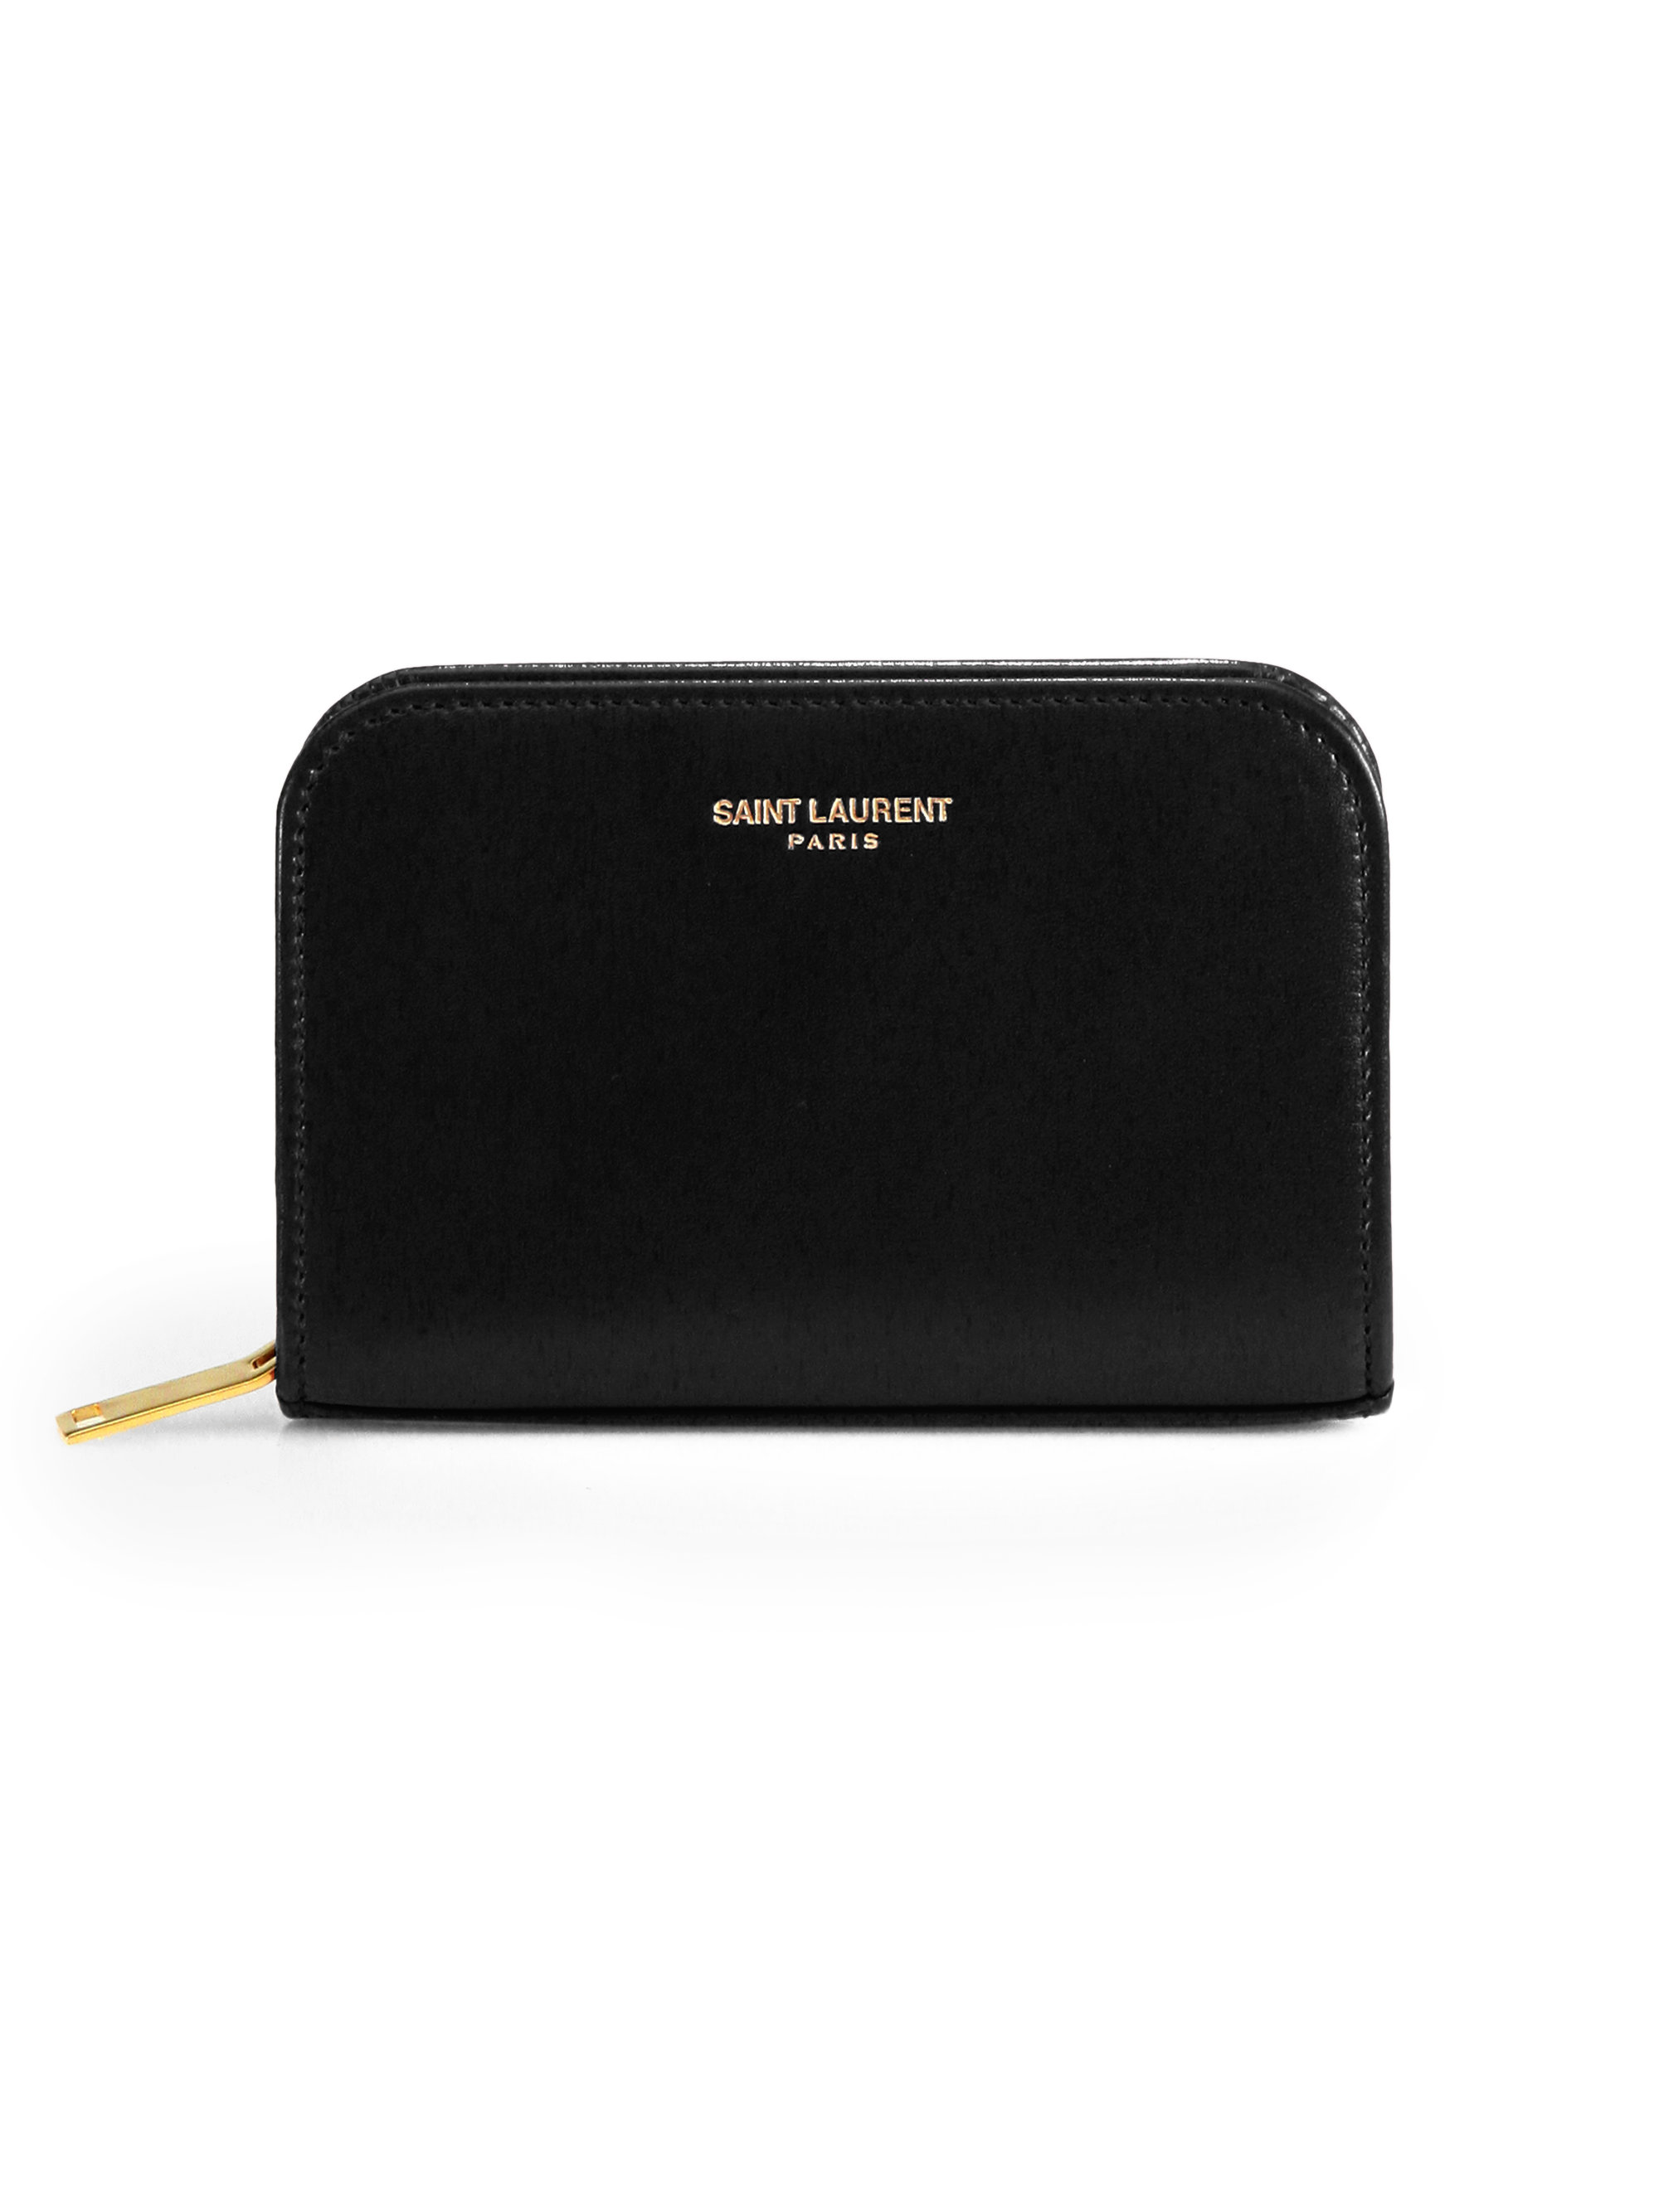 4e910b2bc27 Saint laurent Marquage Zip-around Leather Coin Purse in Black | Lyst